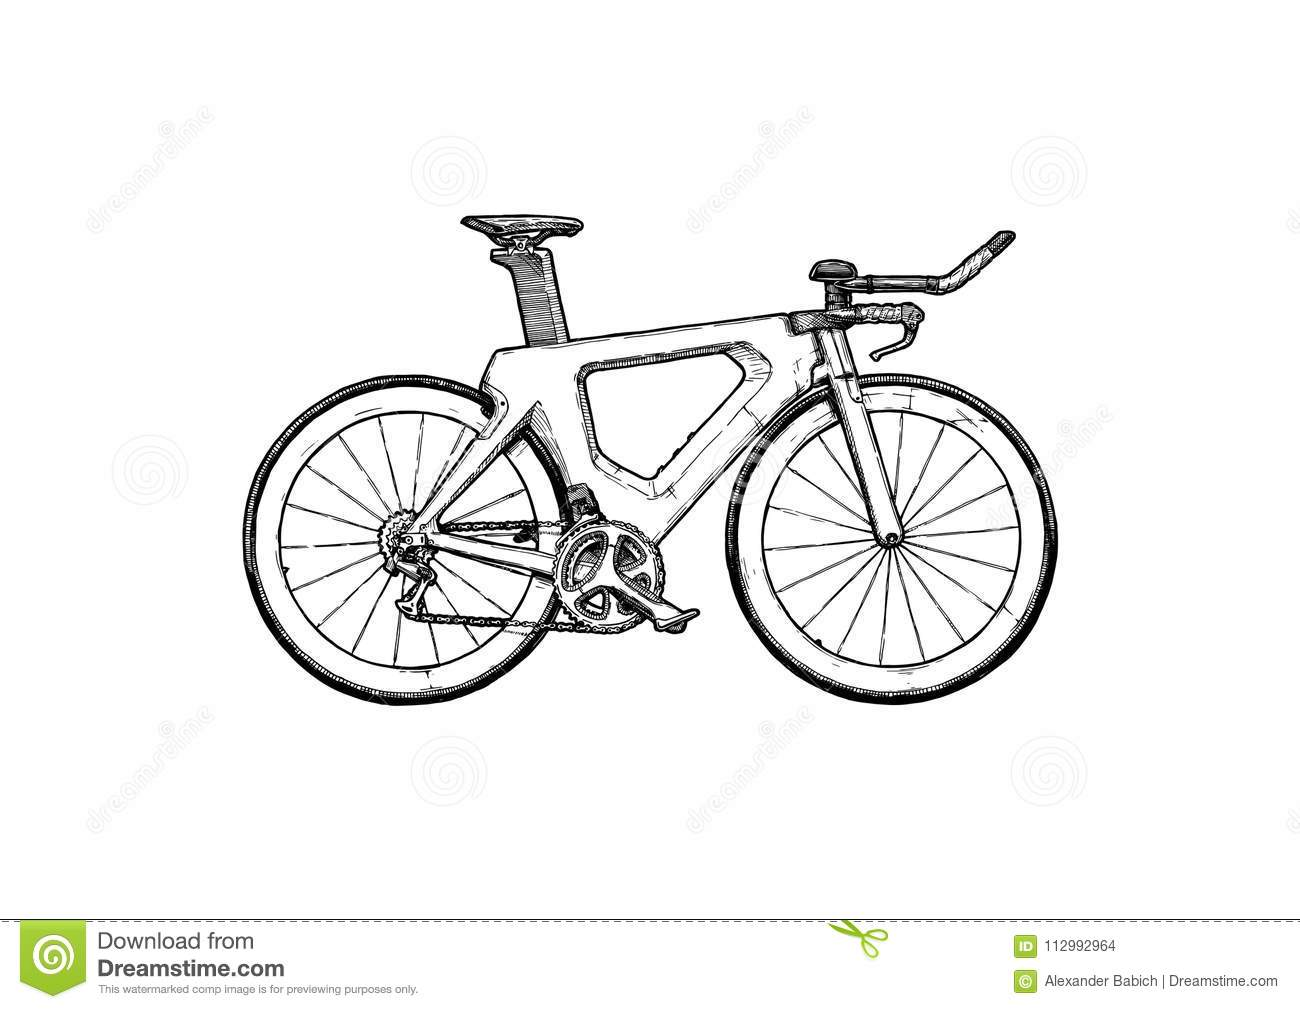 Time trial bicycle stock vector  Illustration of retro